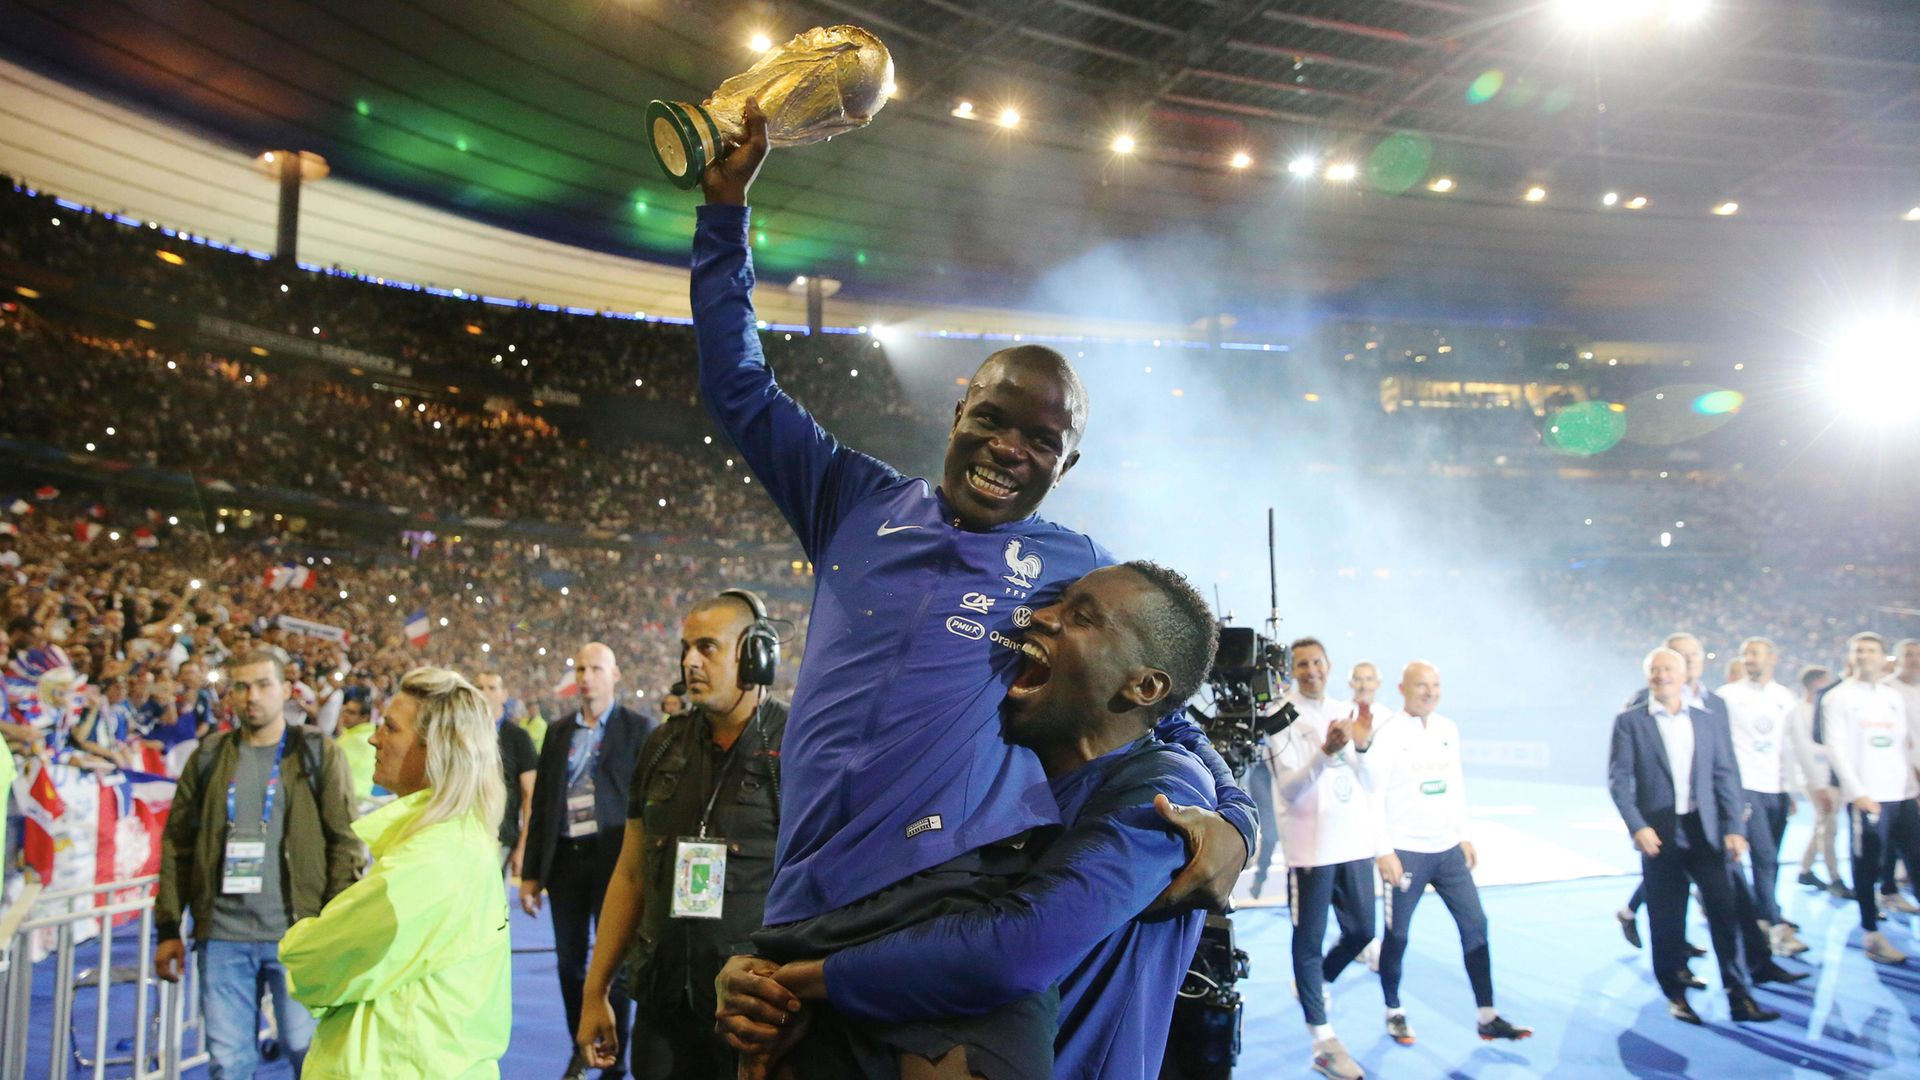 N'Golo Kante and Blaise Matuidi of France celebrate with the World Cup trophy - Credit: Photo by Xavier Laine/Getty Images